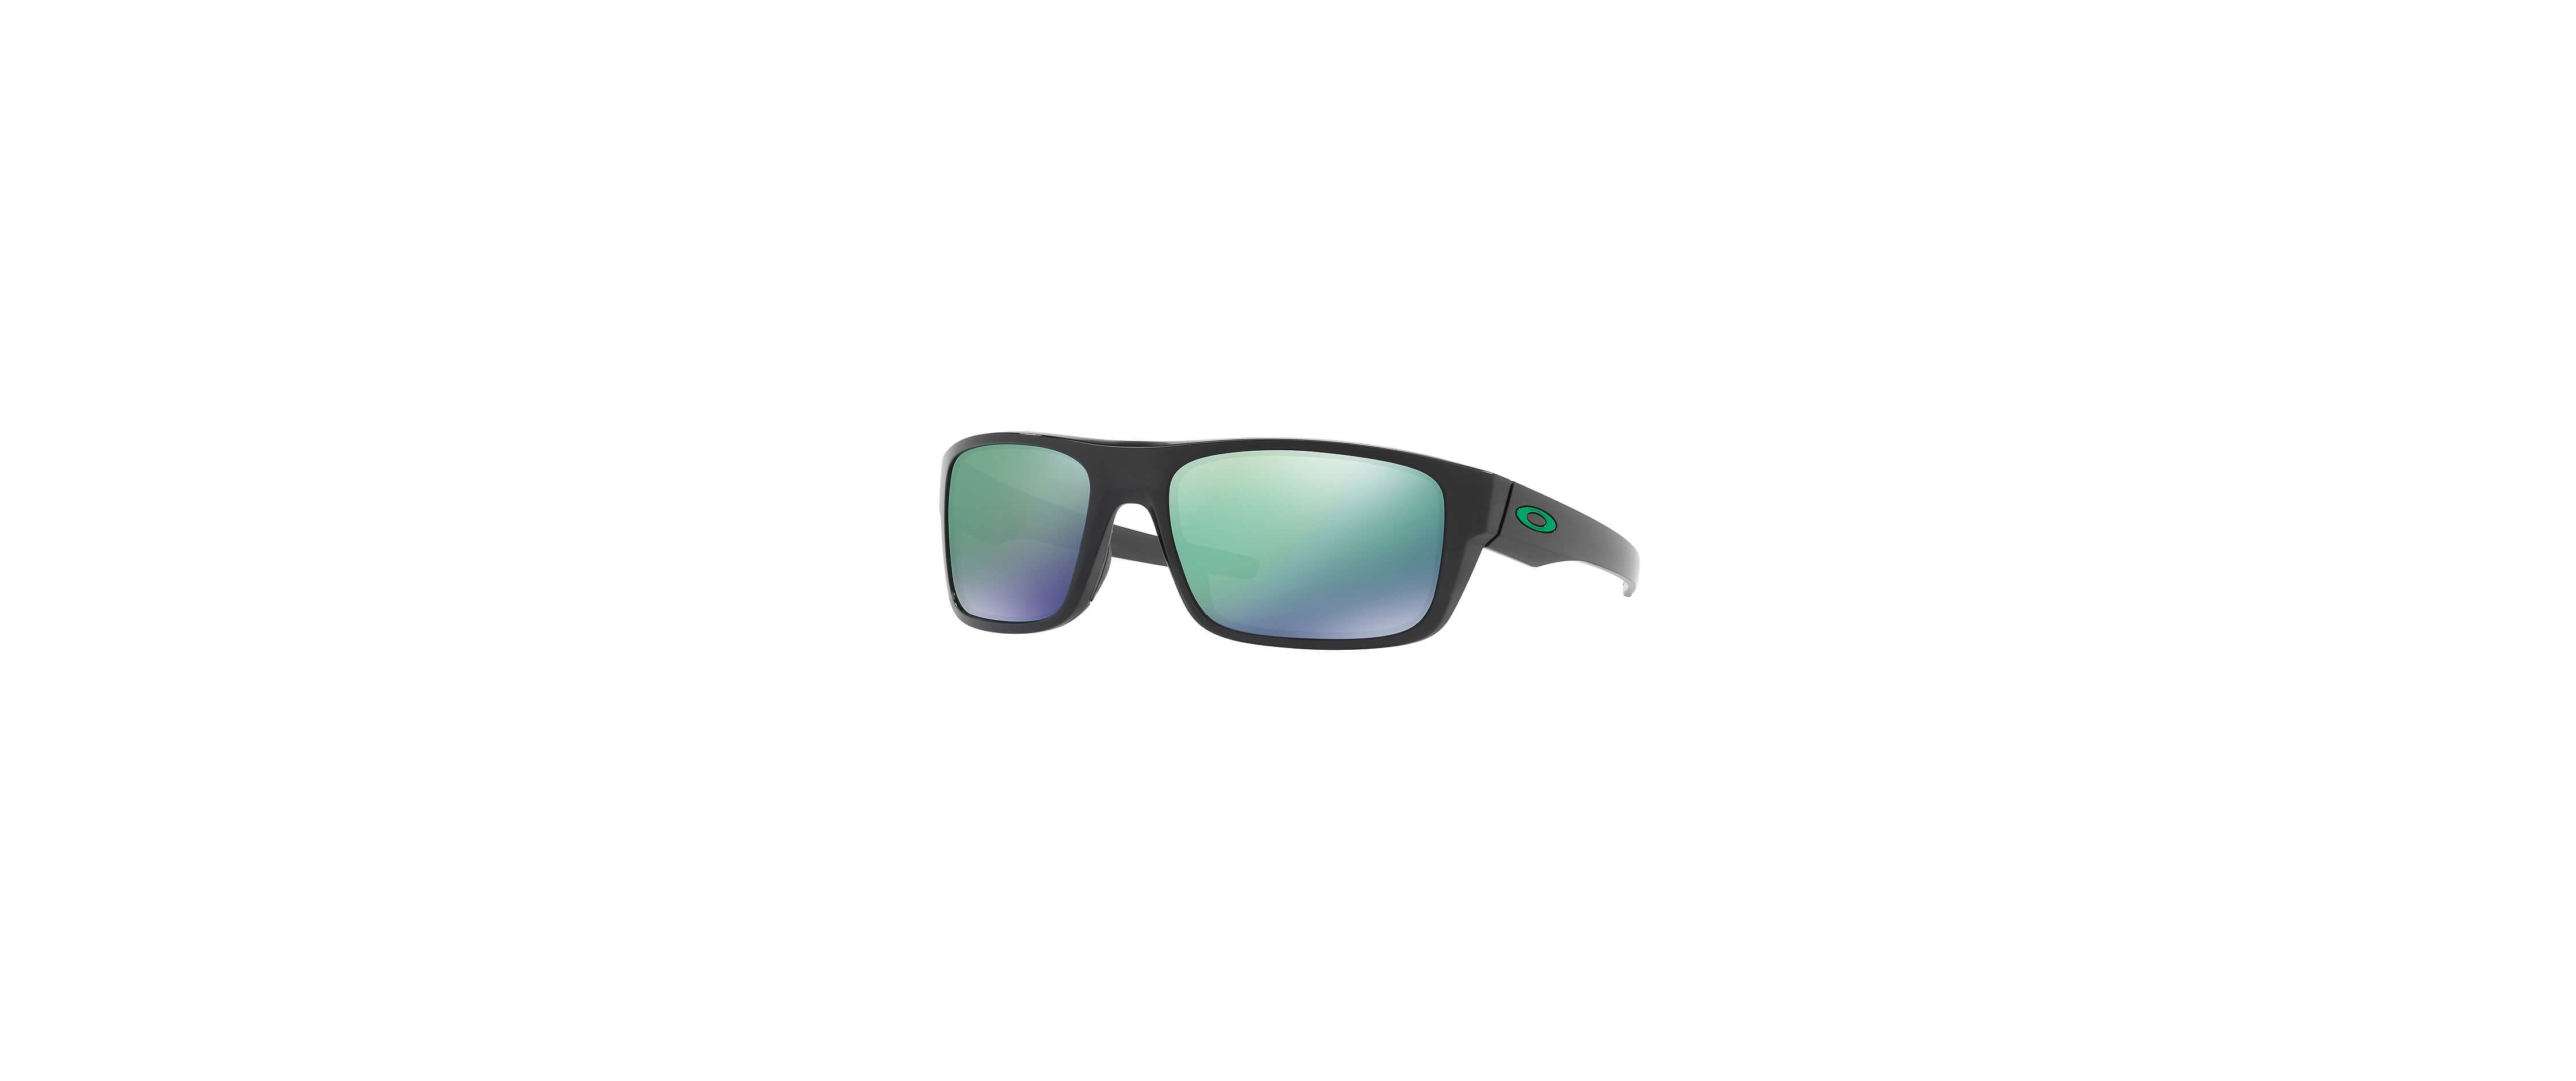 mens sunglasses oakley  Accessories for Men - Sunglasses, Oakley